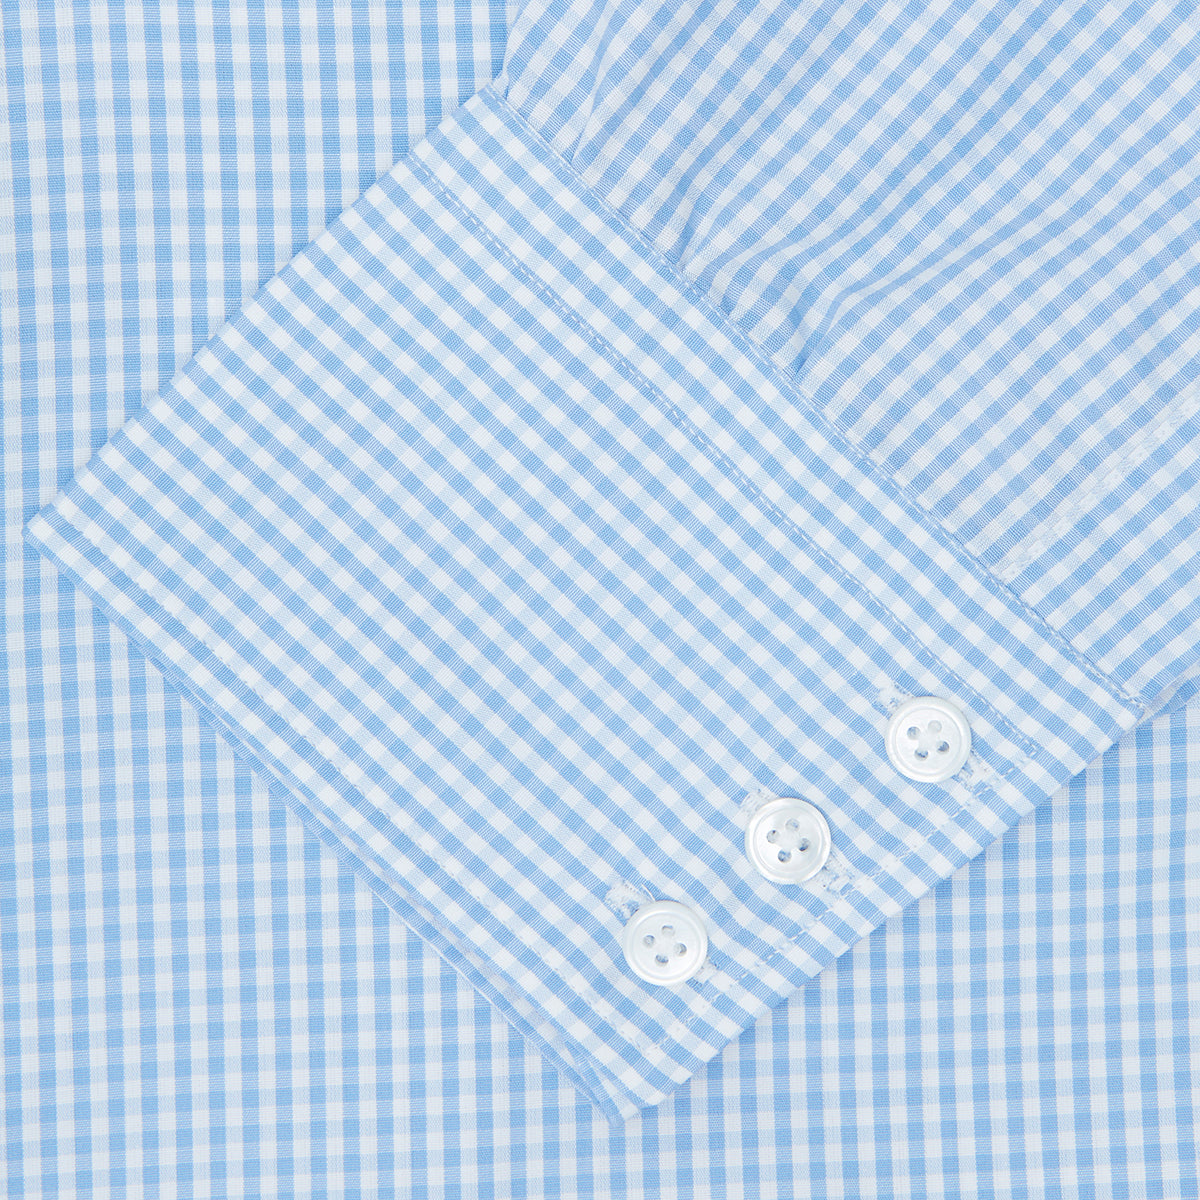 Light Blue Gingham Check Shirt with T&A Collar and 3-Button Cuffs